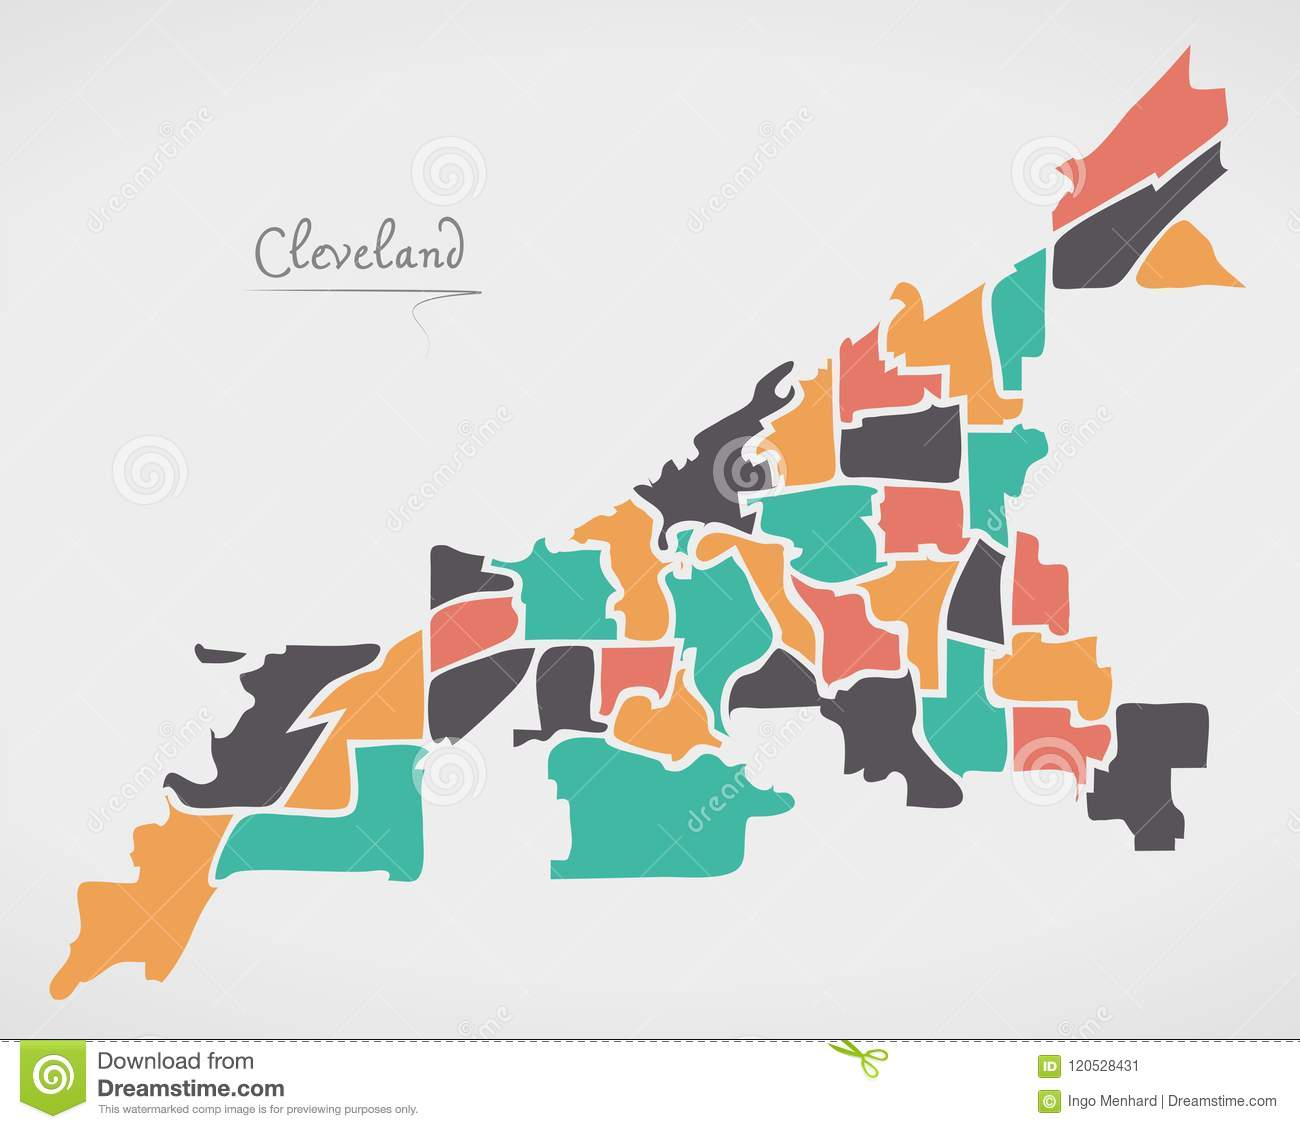 Cleveland Ohio Map With Neighborhoods And Modern Round Shapes Stock on